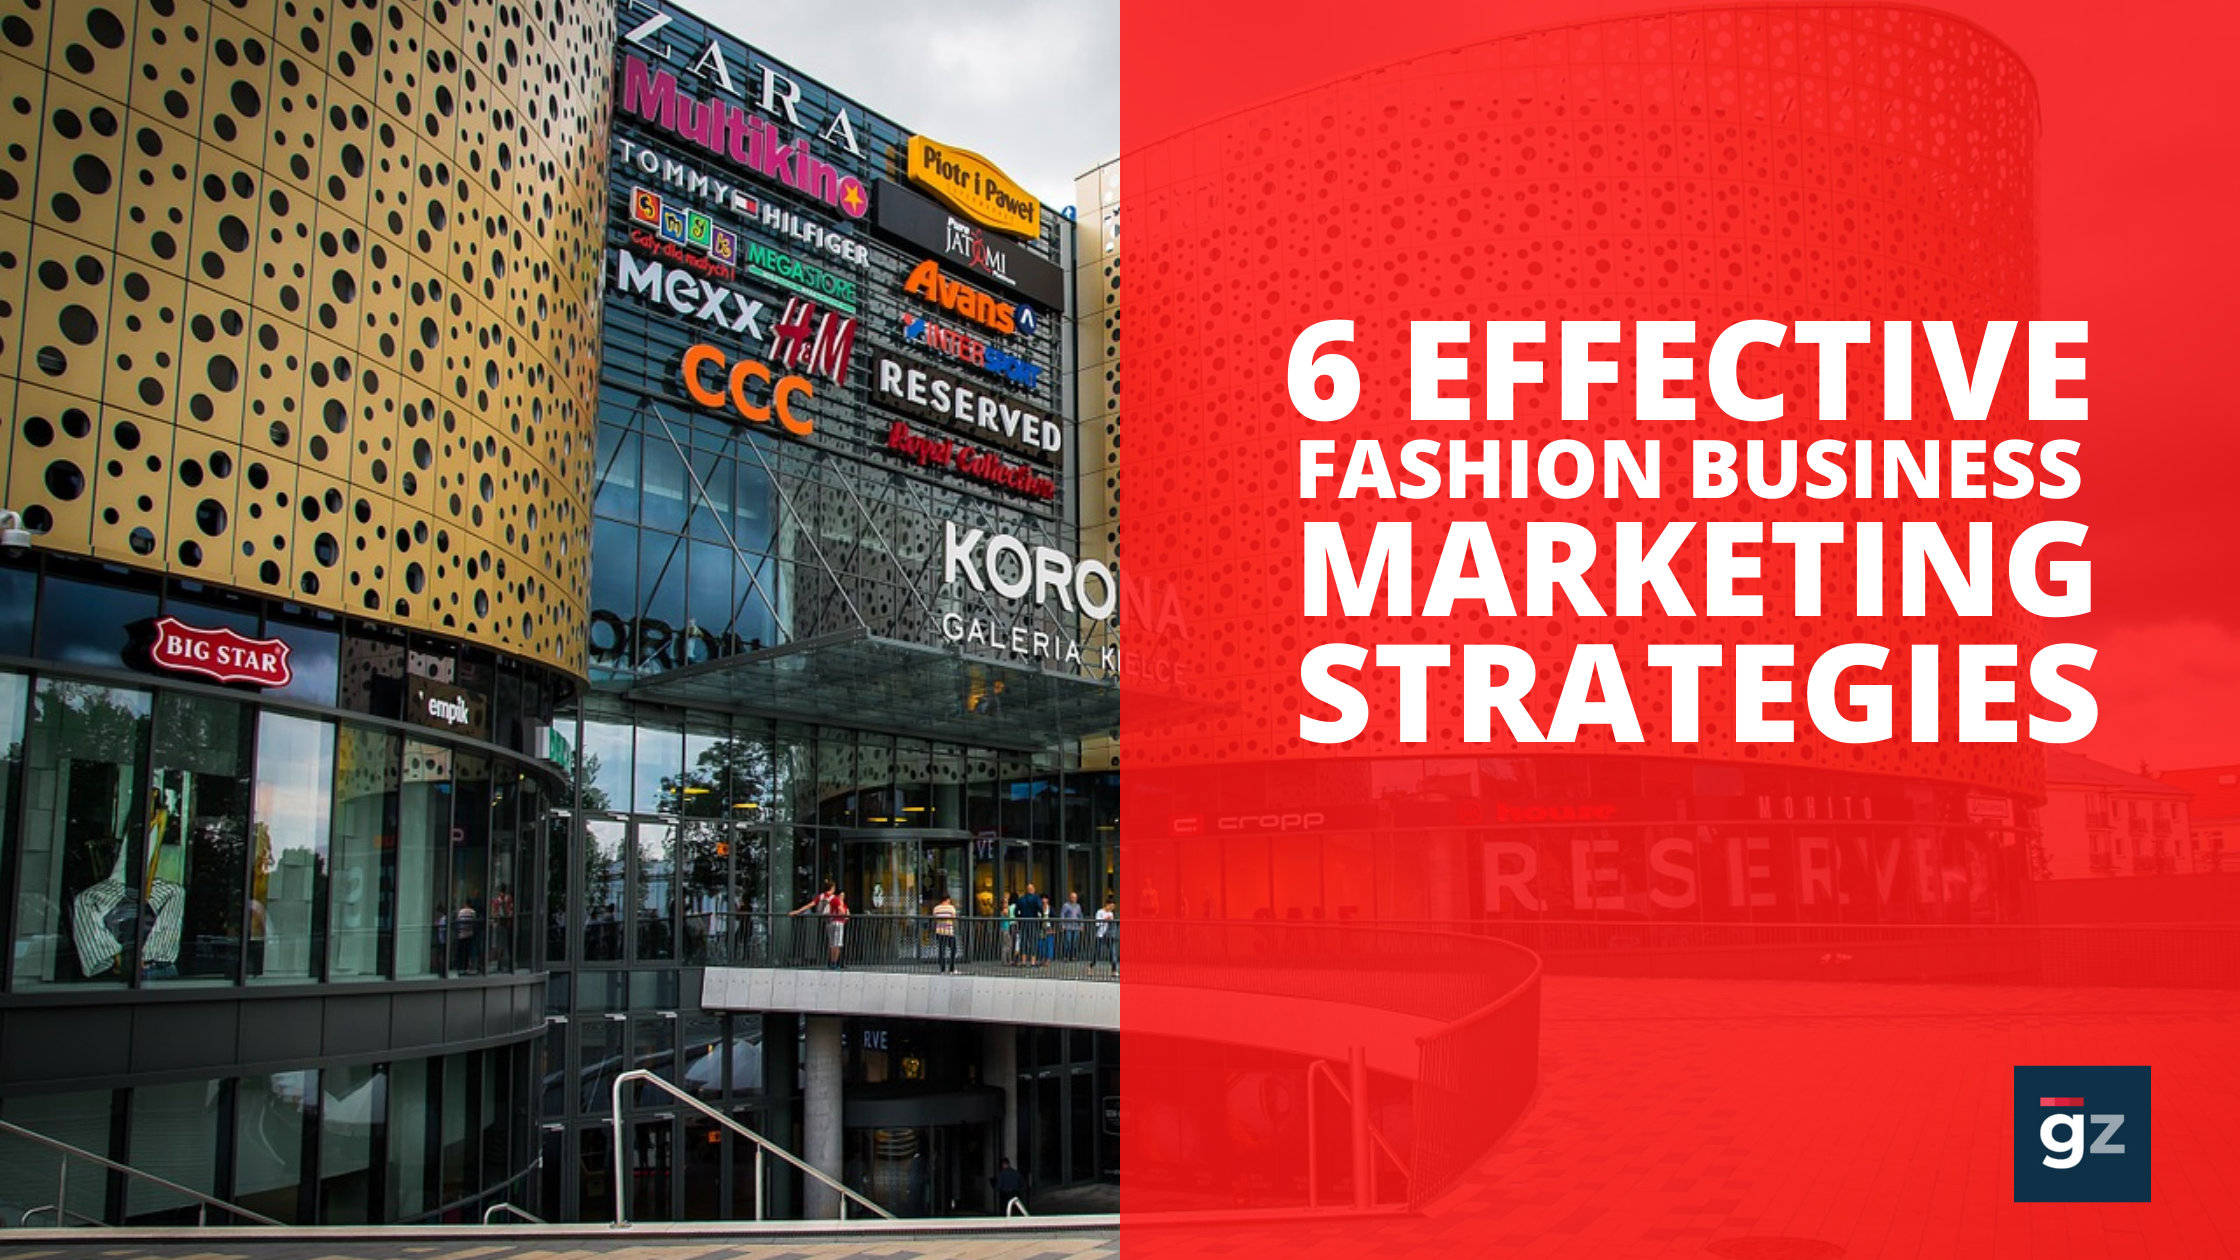 6 Effective Fashion Business Marketing Strategies